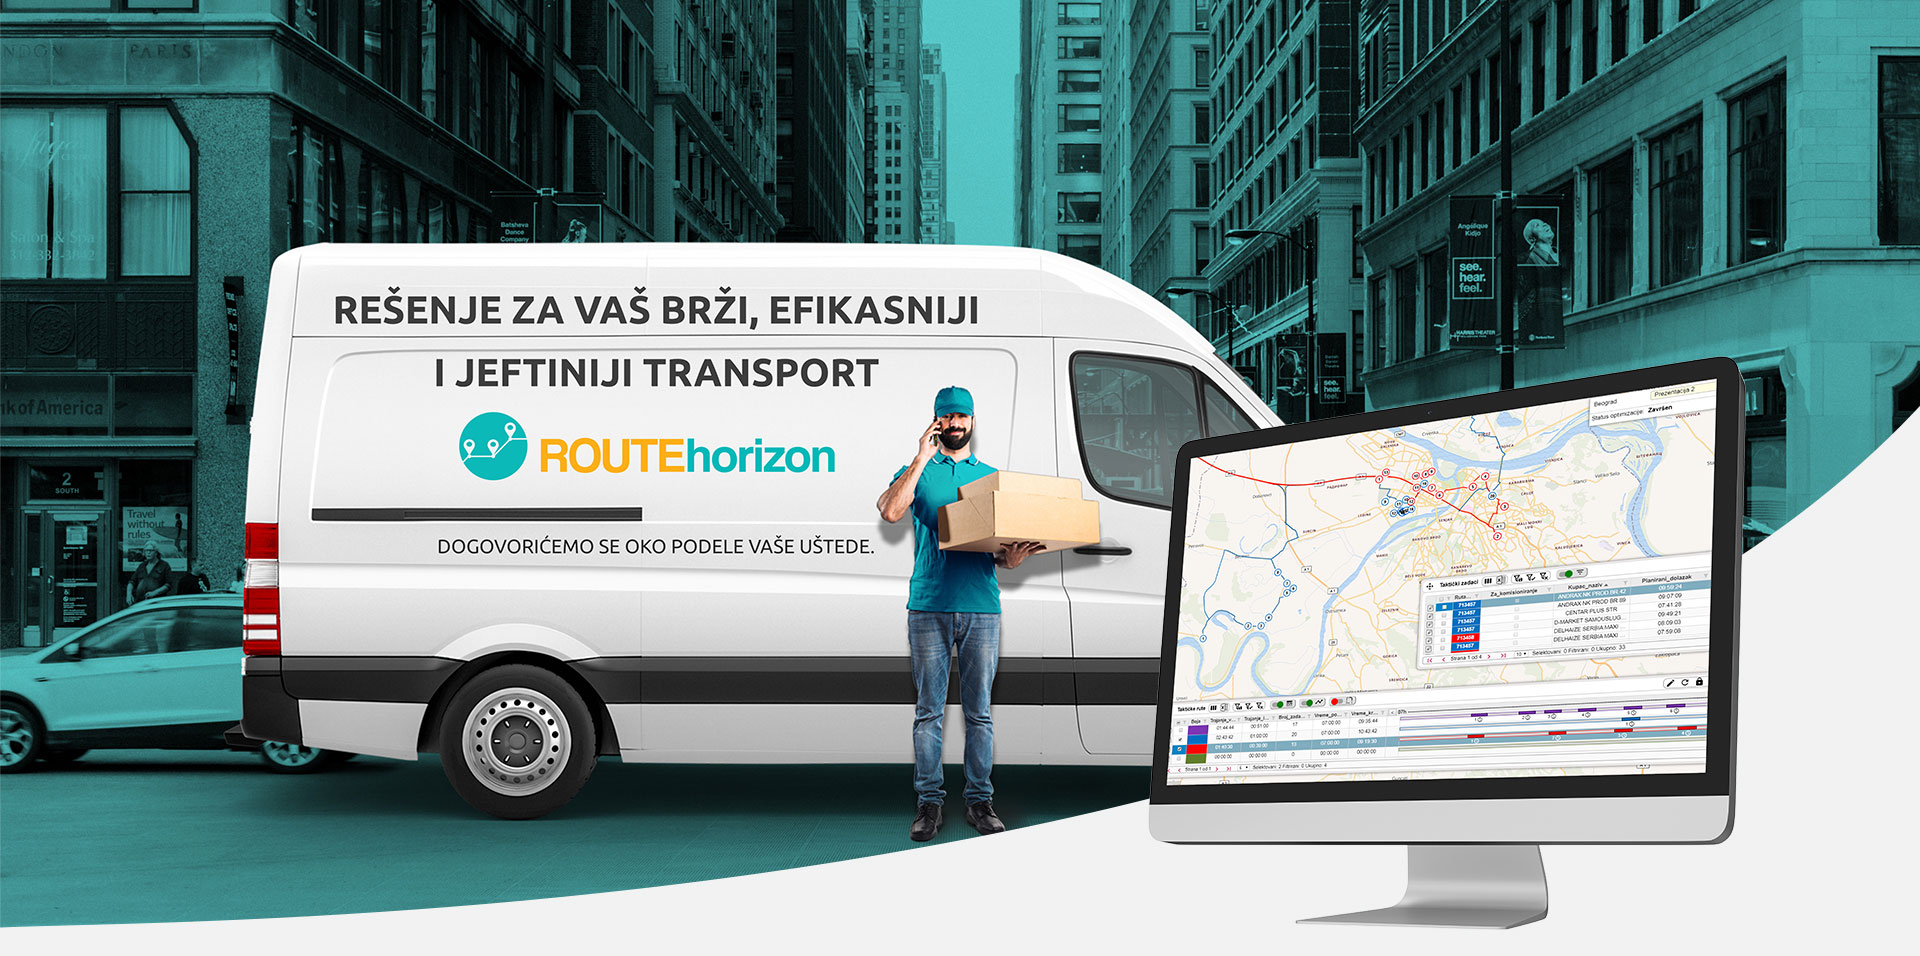 RouteHorizon